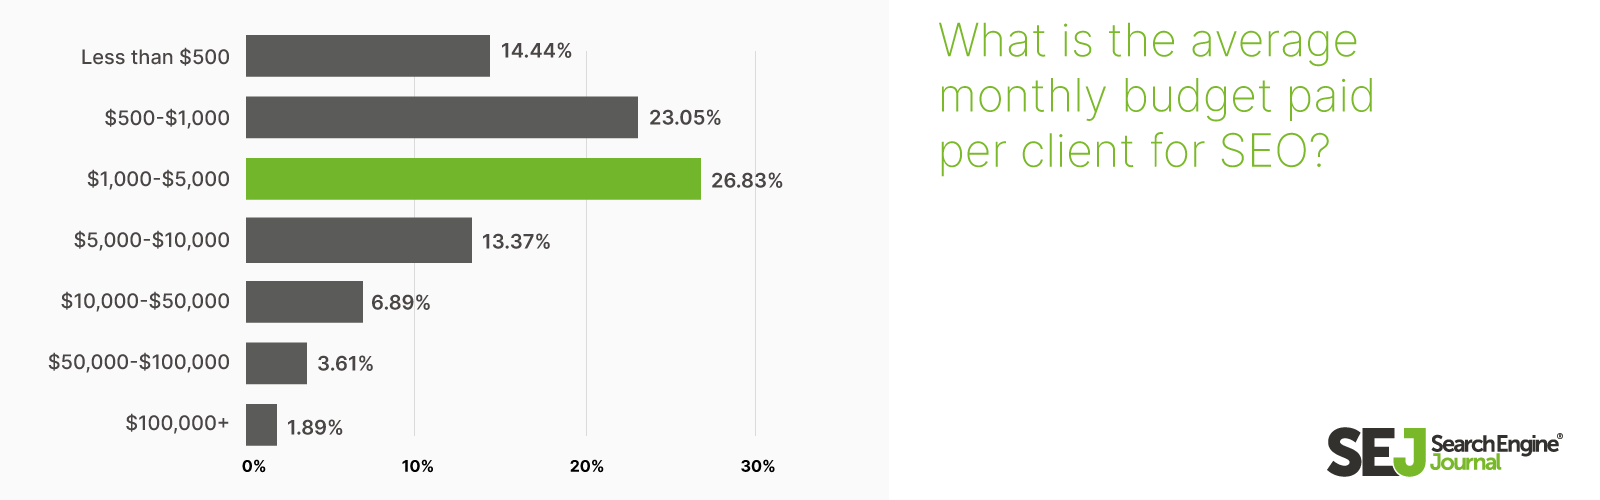 Most common SEO budgets graph